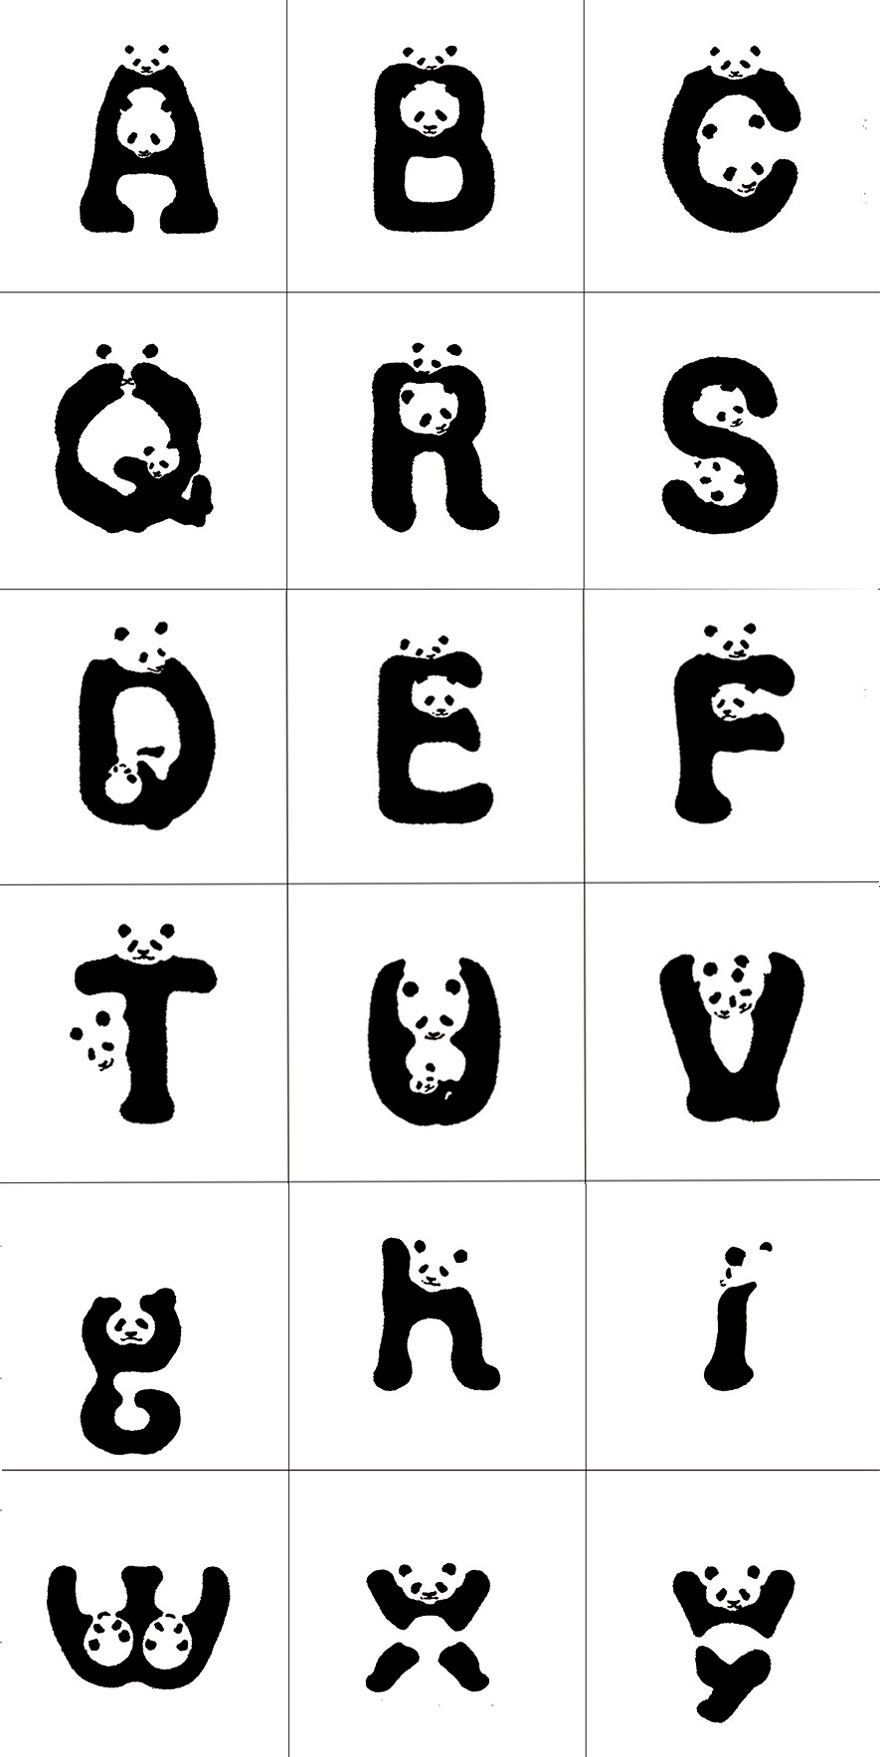 wwf japan creates panda font world report our actions tunza